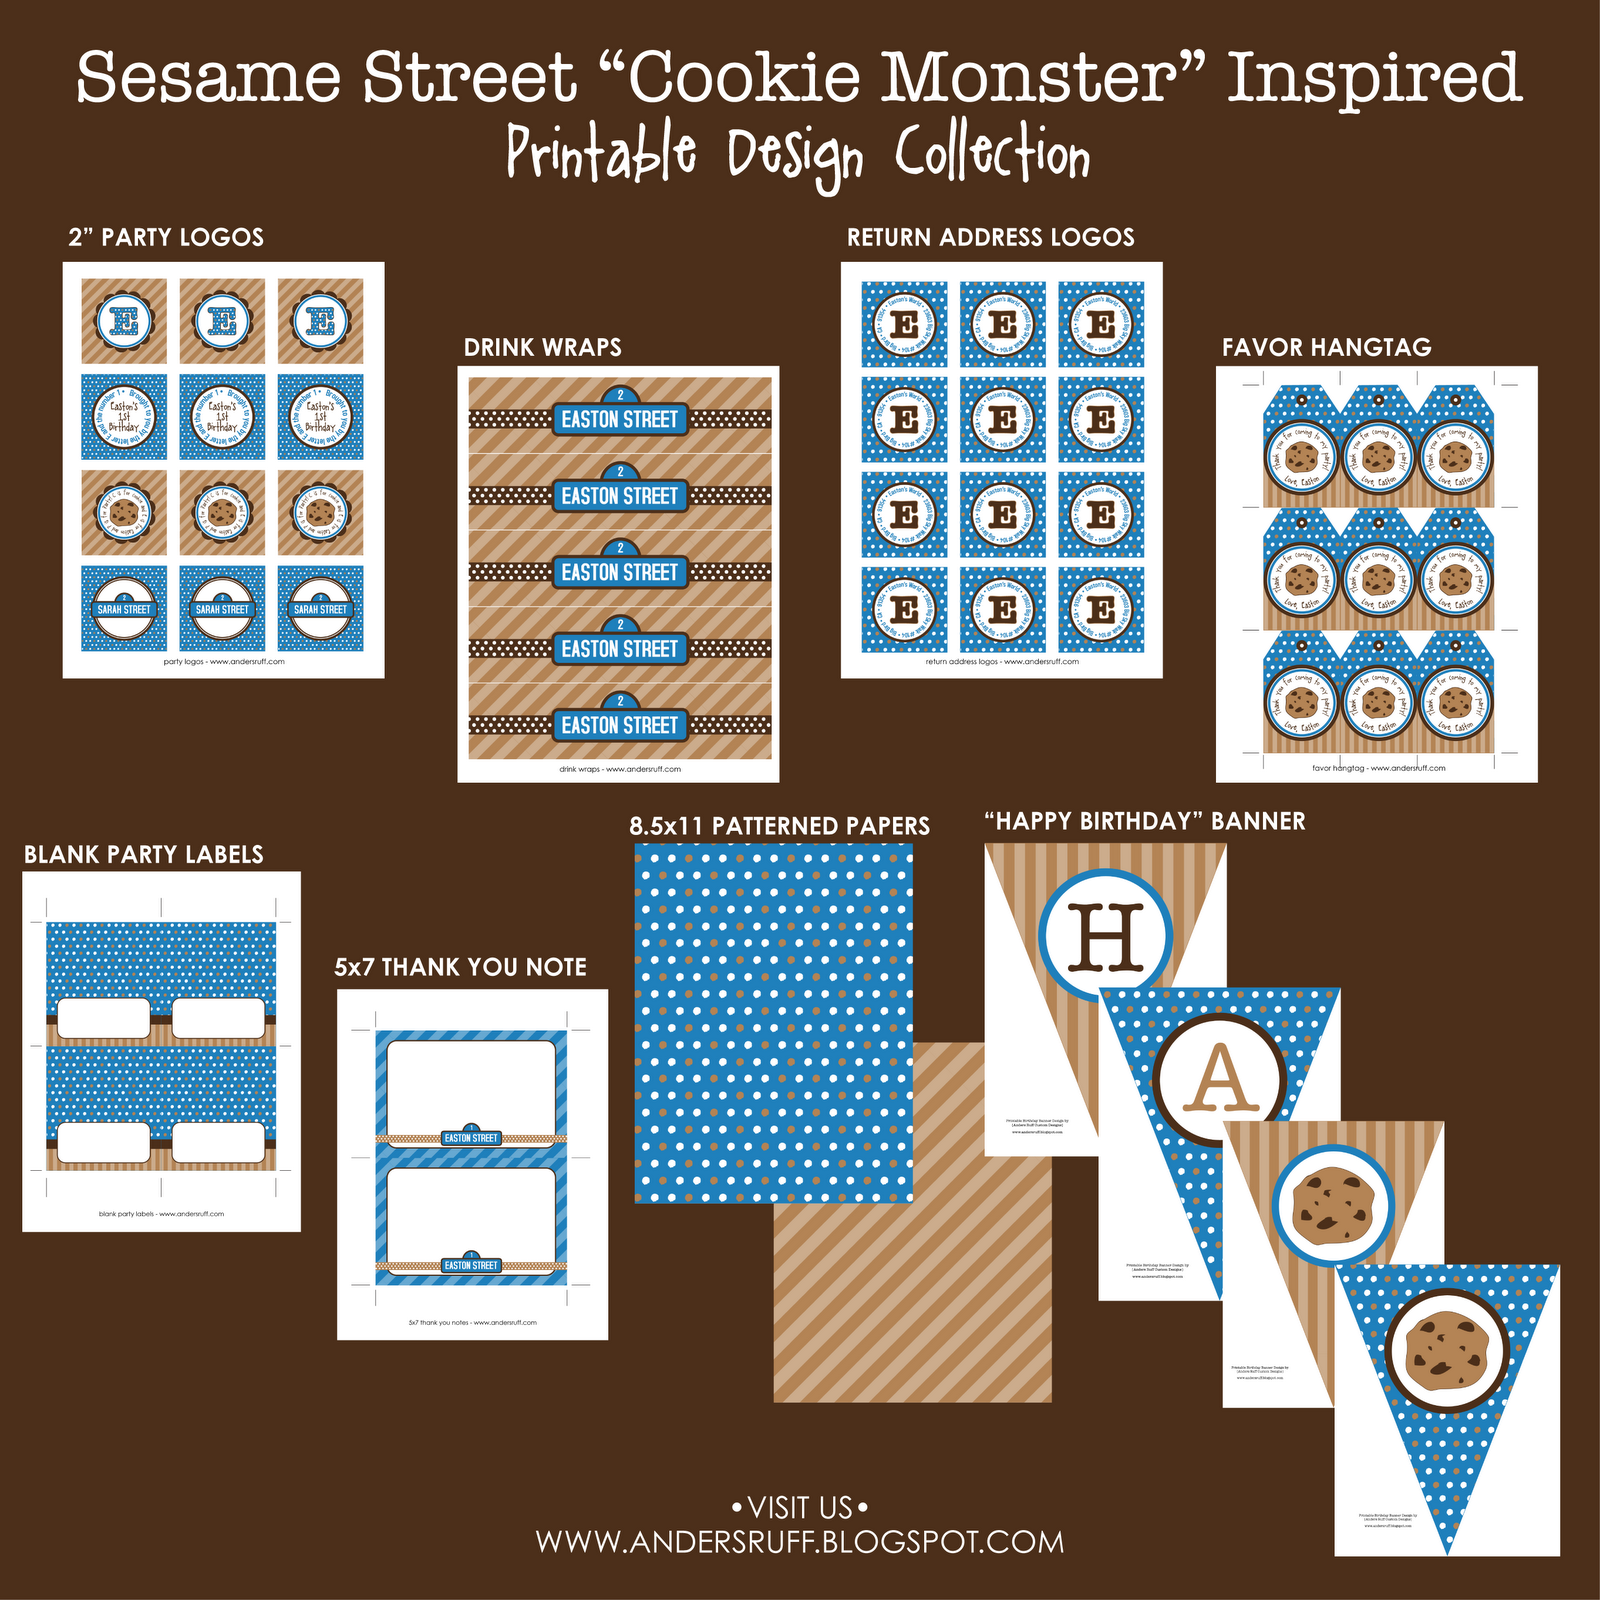 Sesame Street Invitations Etsy was Awesome Ideas To Make Cool Invitations Card